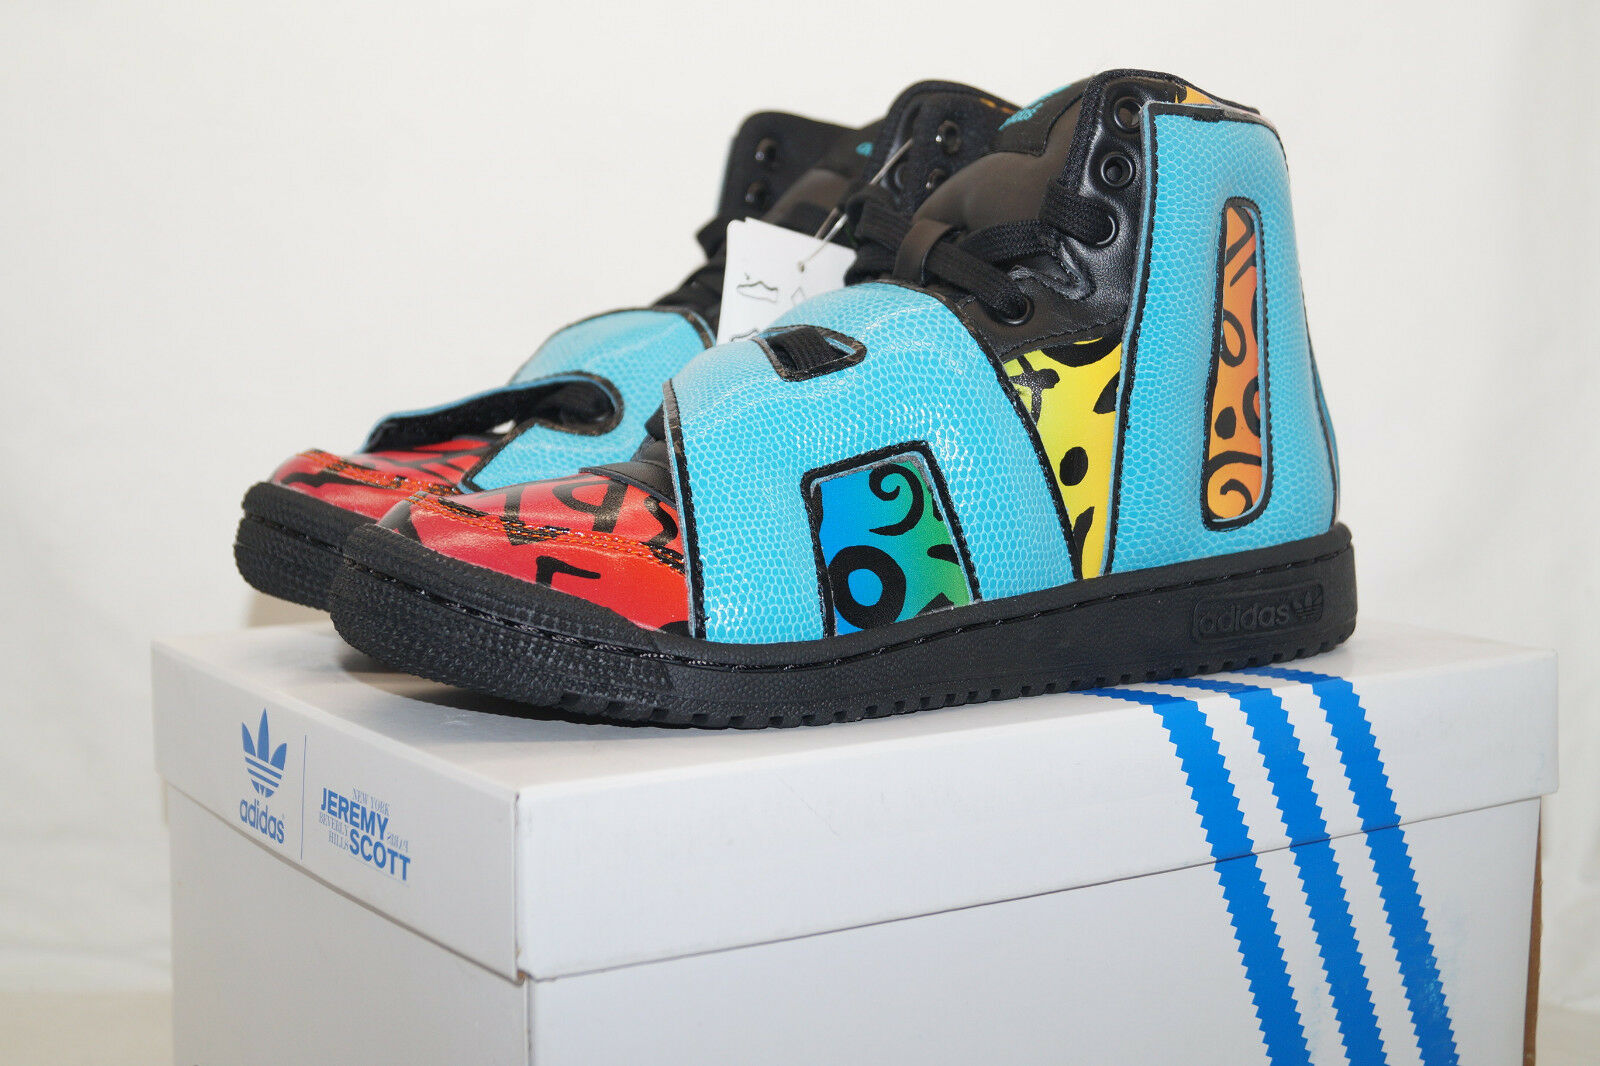 adidas originals Jeremy Scott JS LETTERS MULTIFarbe EU 40.6 UK 7 unisex D65213